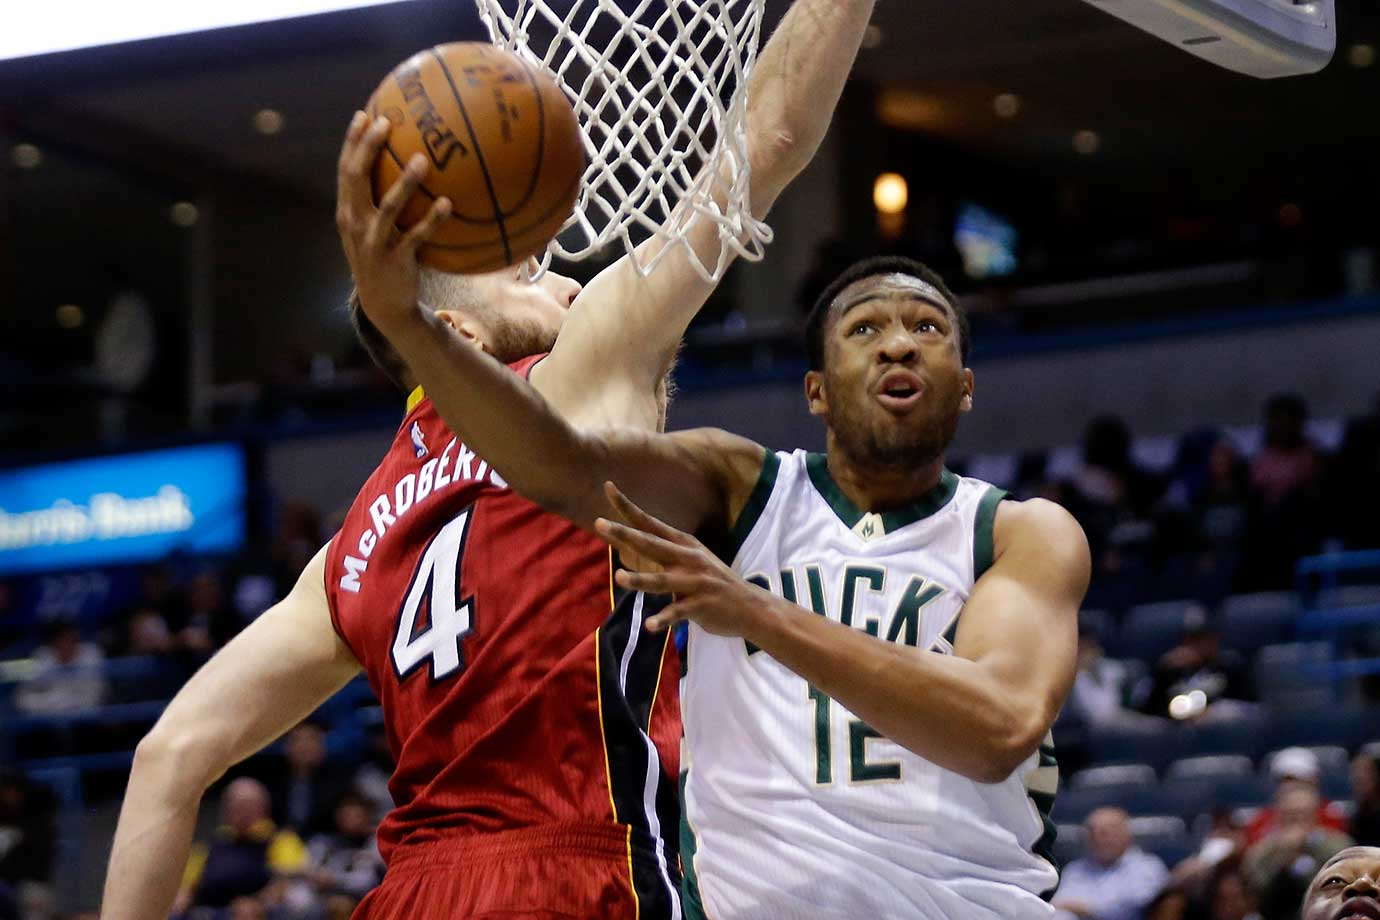 Jabari Parker of the Milwaukee Bucks drives to the hoop against the Miami Heat at BMO Harris Bradley Center in Wisconsin.